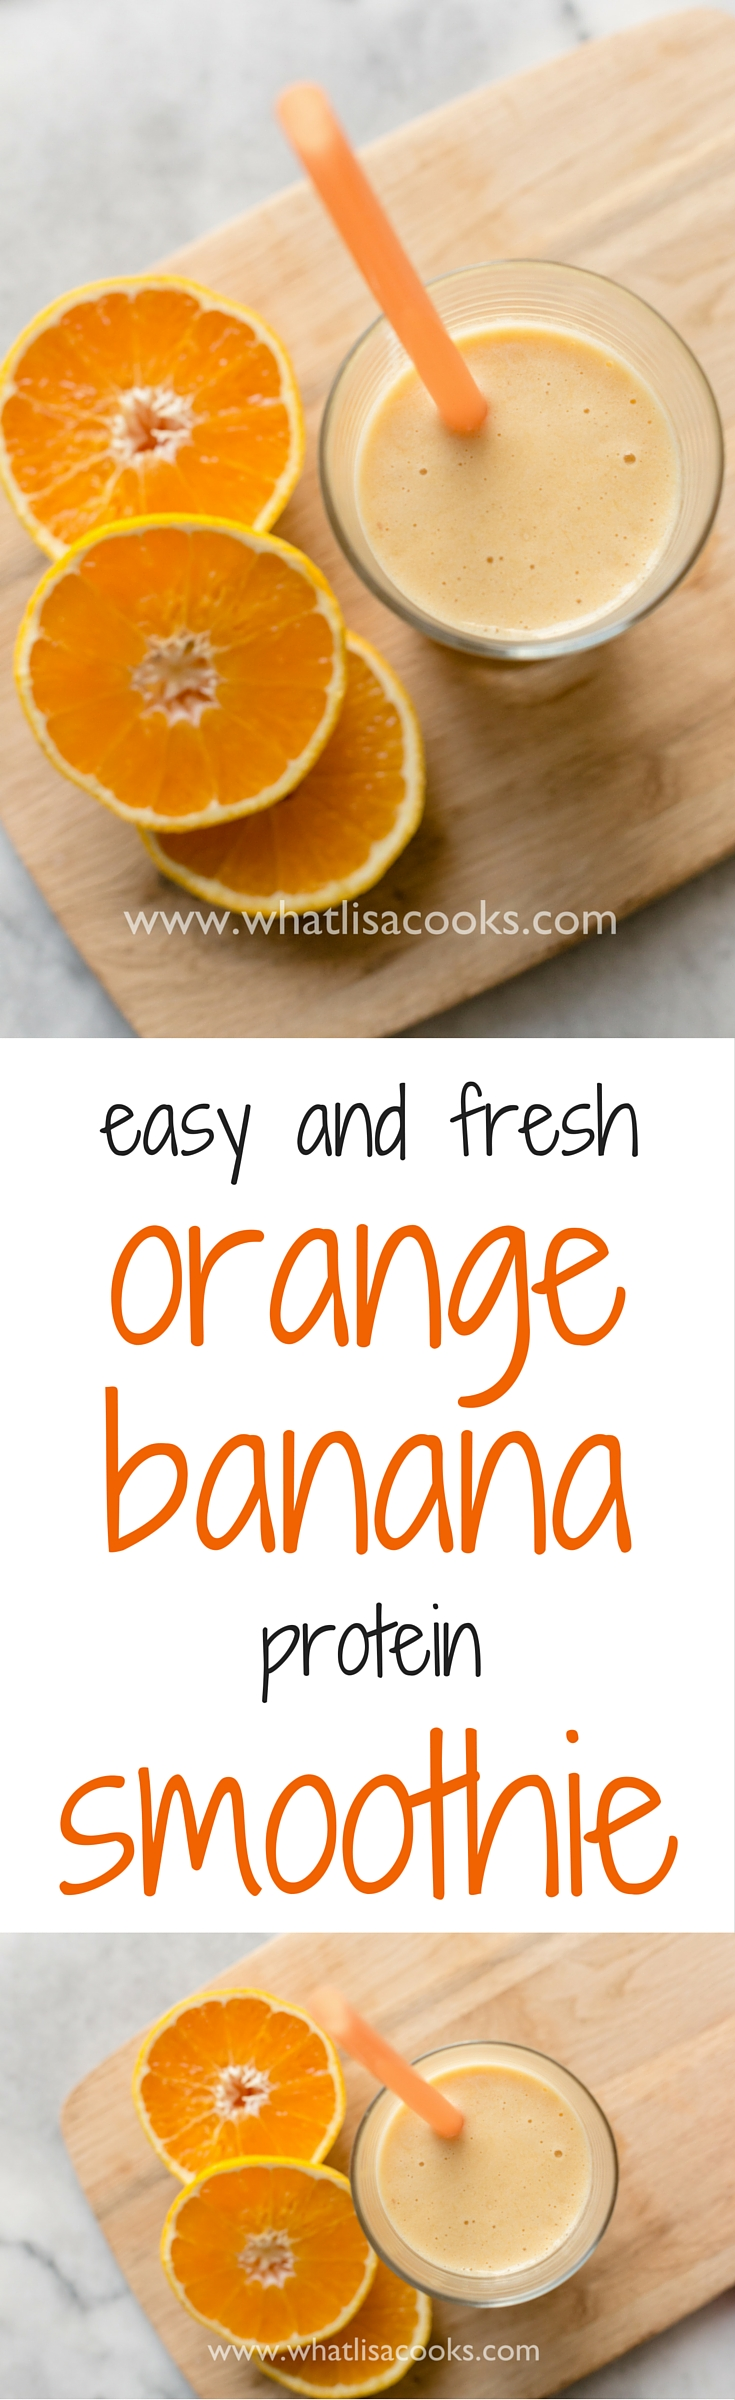 Must try this easy orange banana protein smoothie! whatlisacooks.com